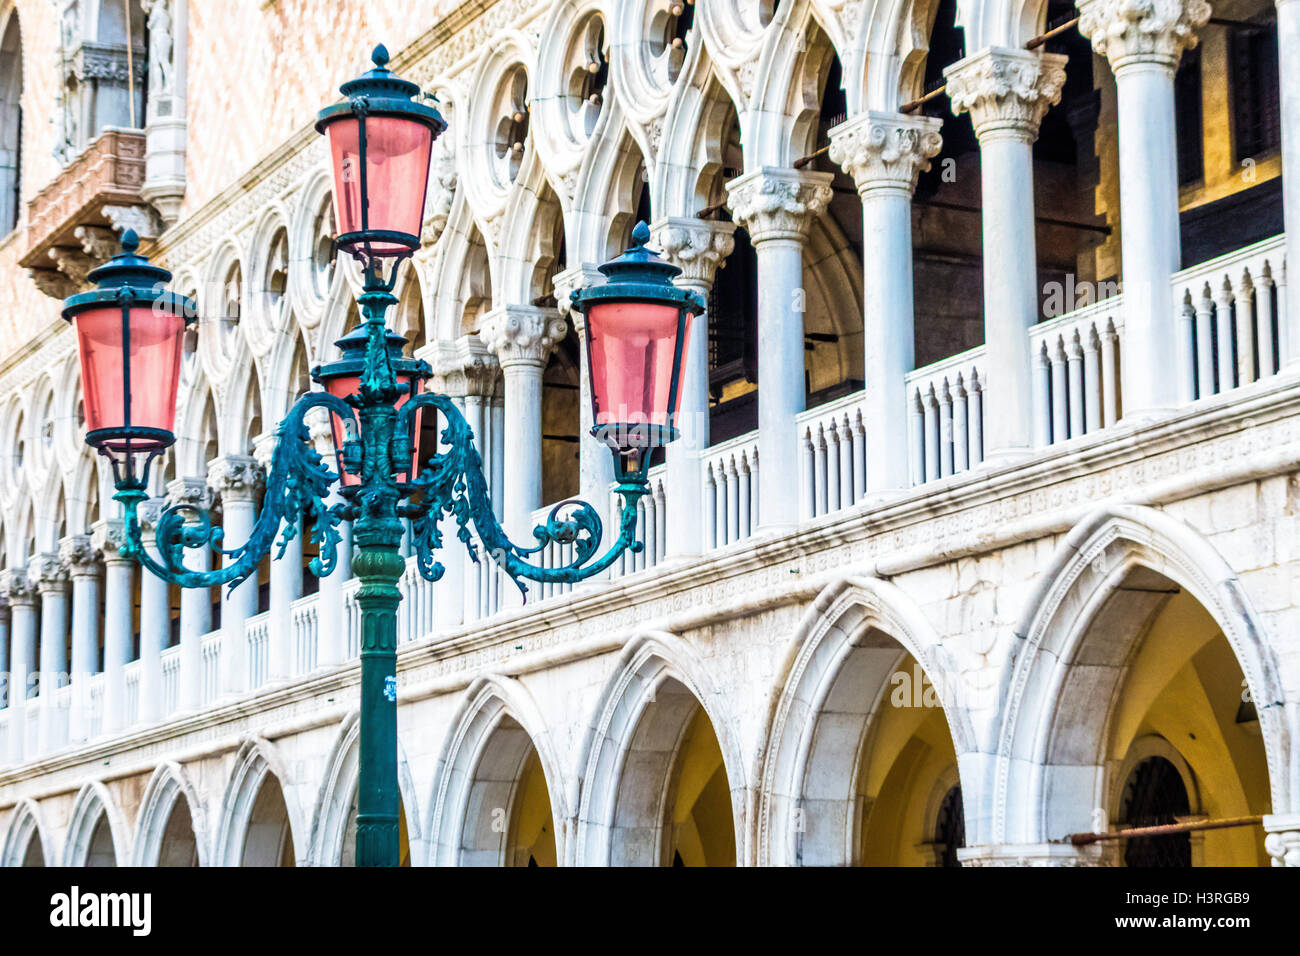 Lamp post with three unlit lights with Libreria Sansoviniana (Library) in background in Piazzetta Venice Italy Europe - Stock Image